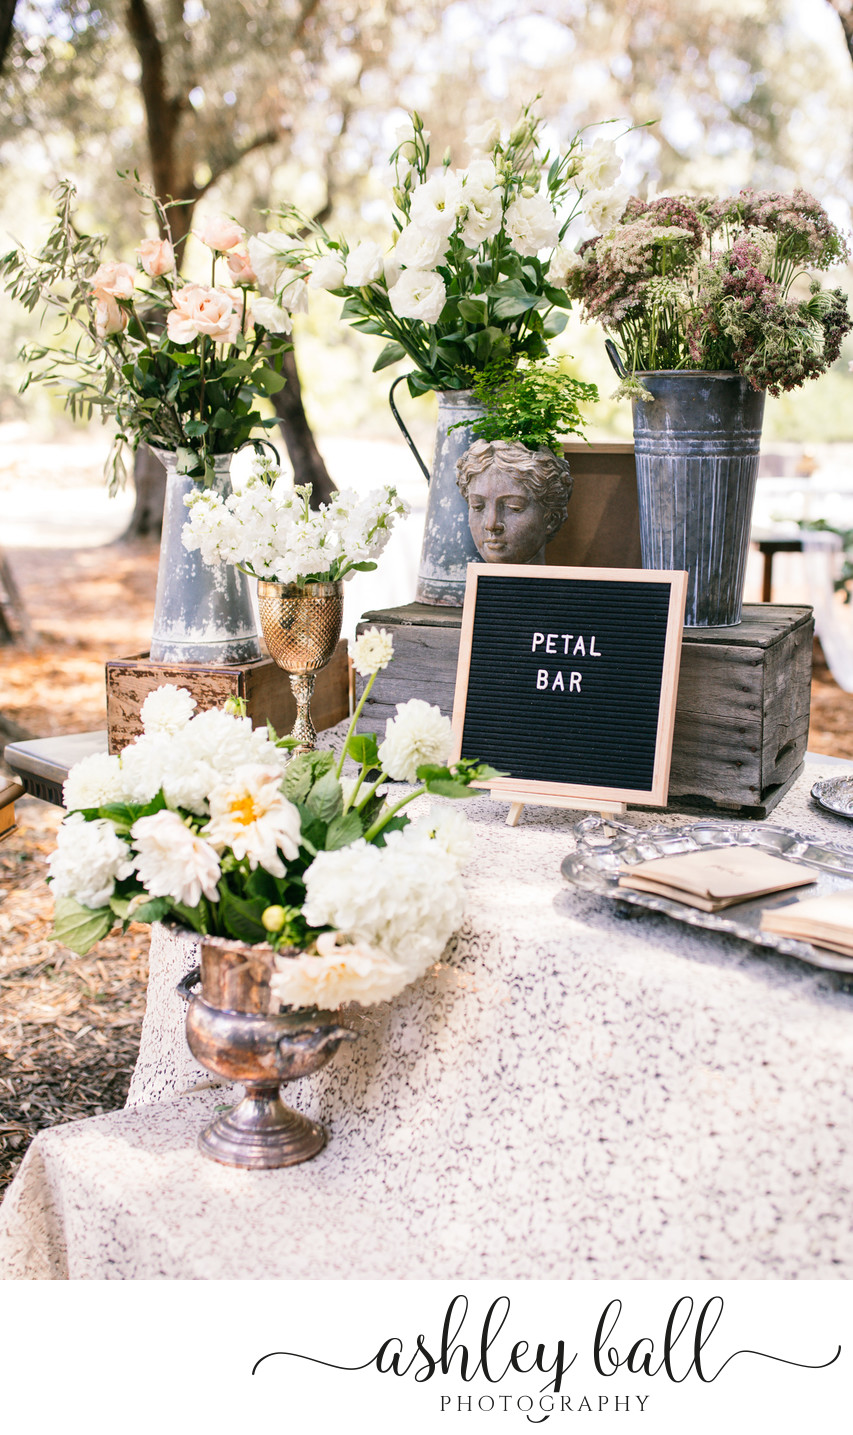 Petal bar at Joyful Ranch in Vacaville, California